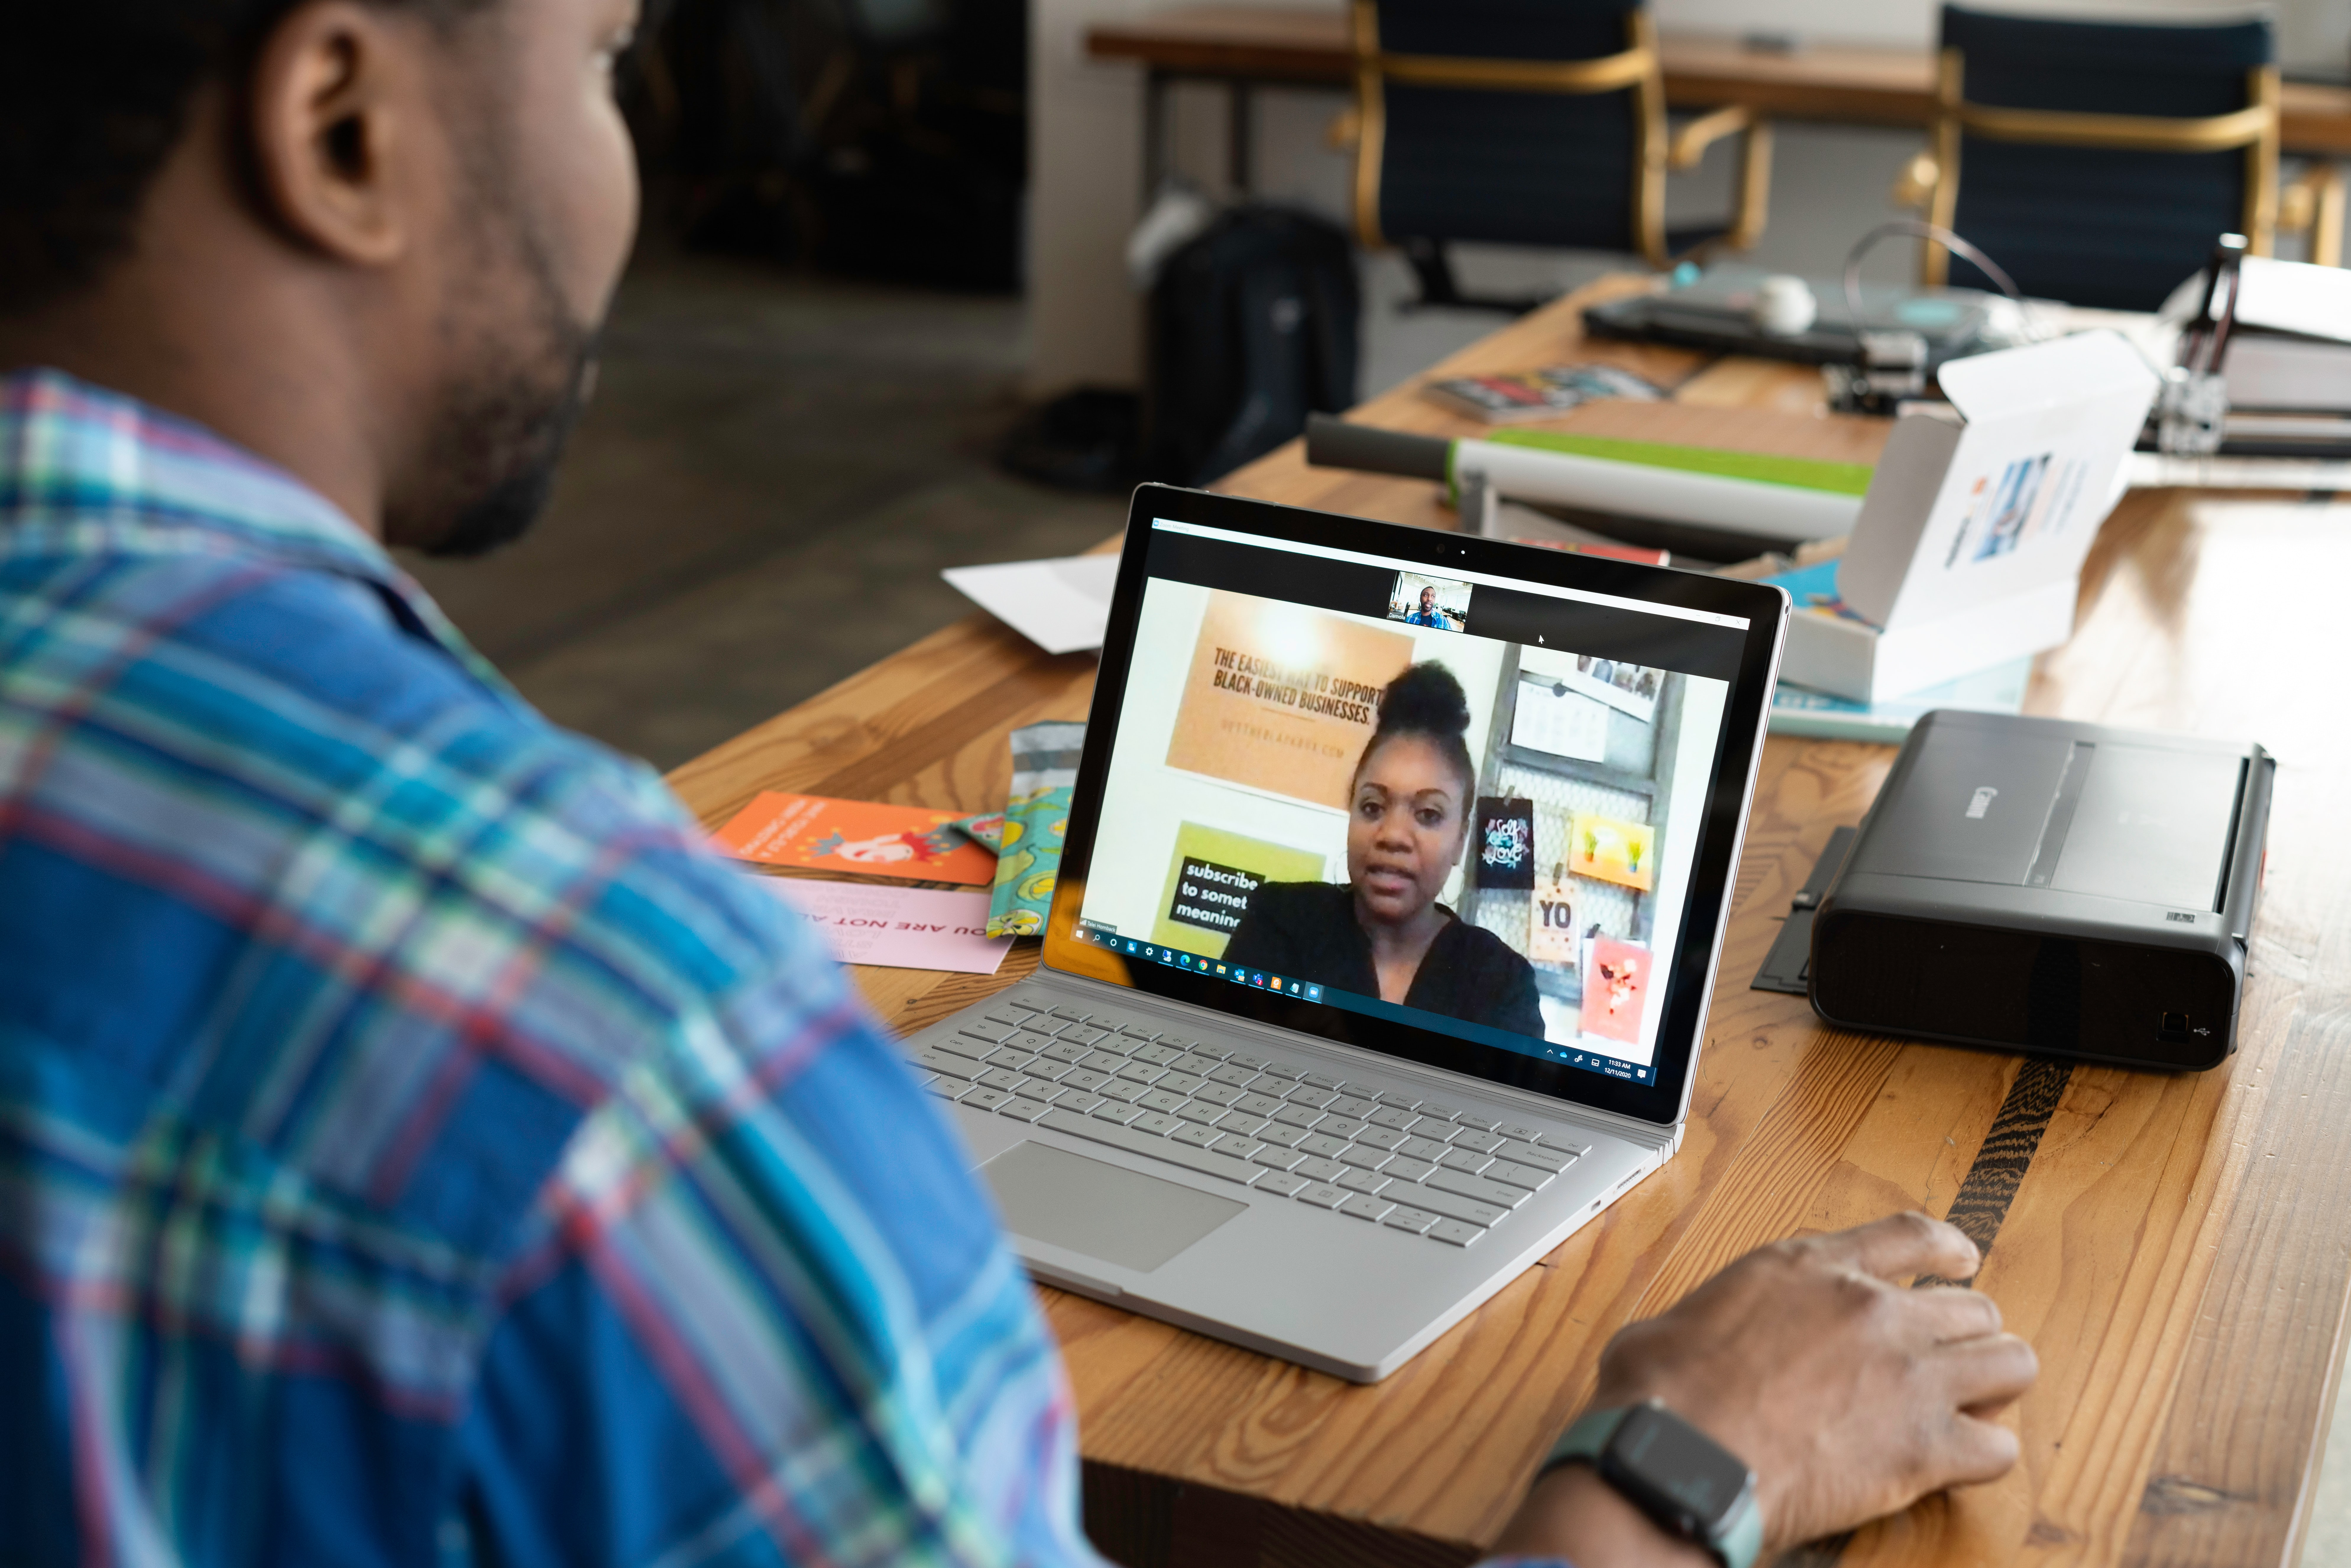 Office worker on video conference with teammate